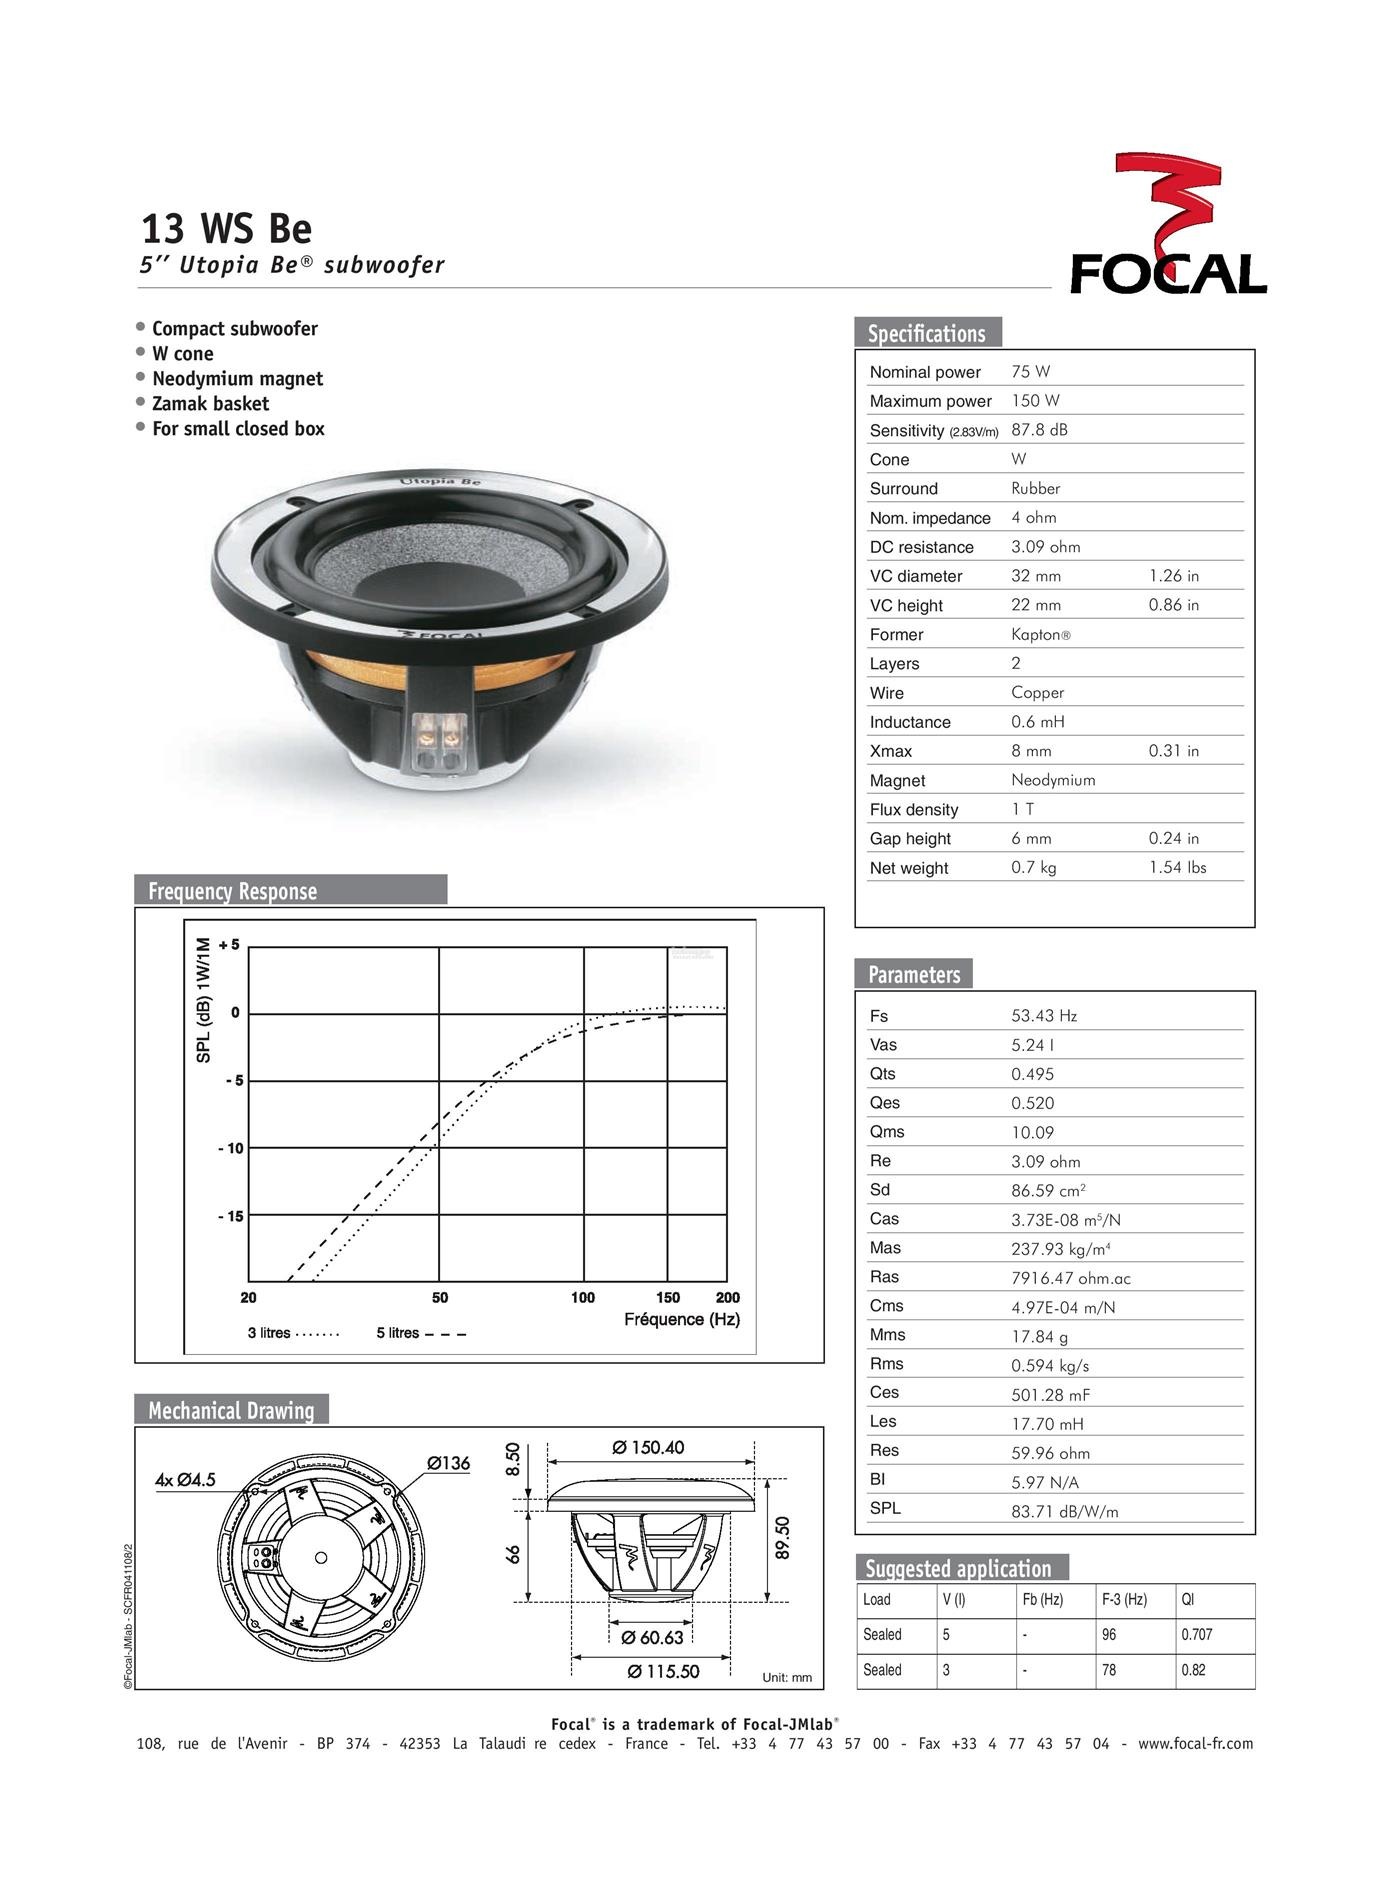 Focal Elite Utopia Be 13 Ws 5 4ohm End 10 6 2 53 Pm